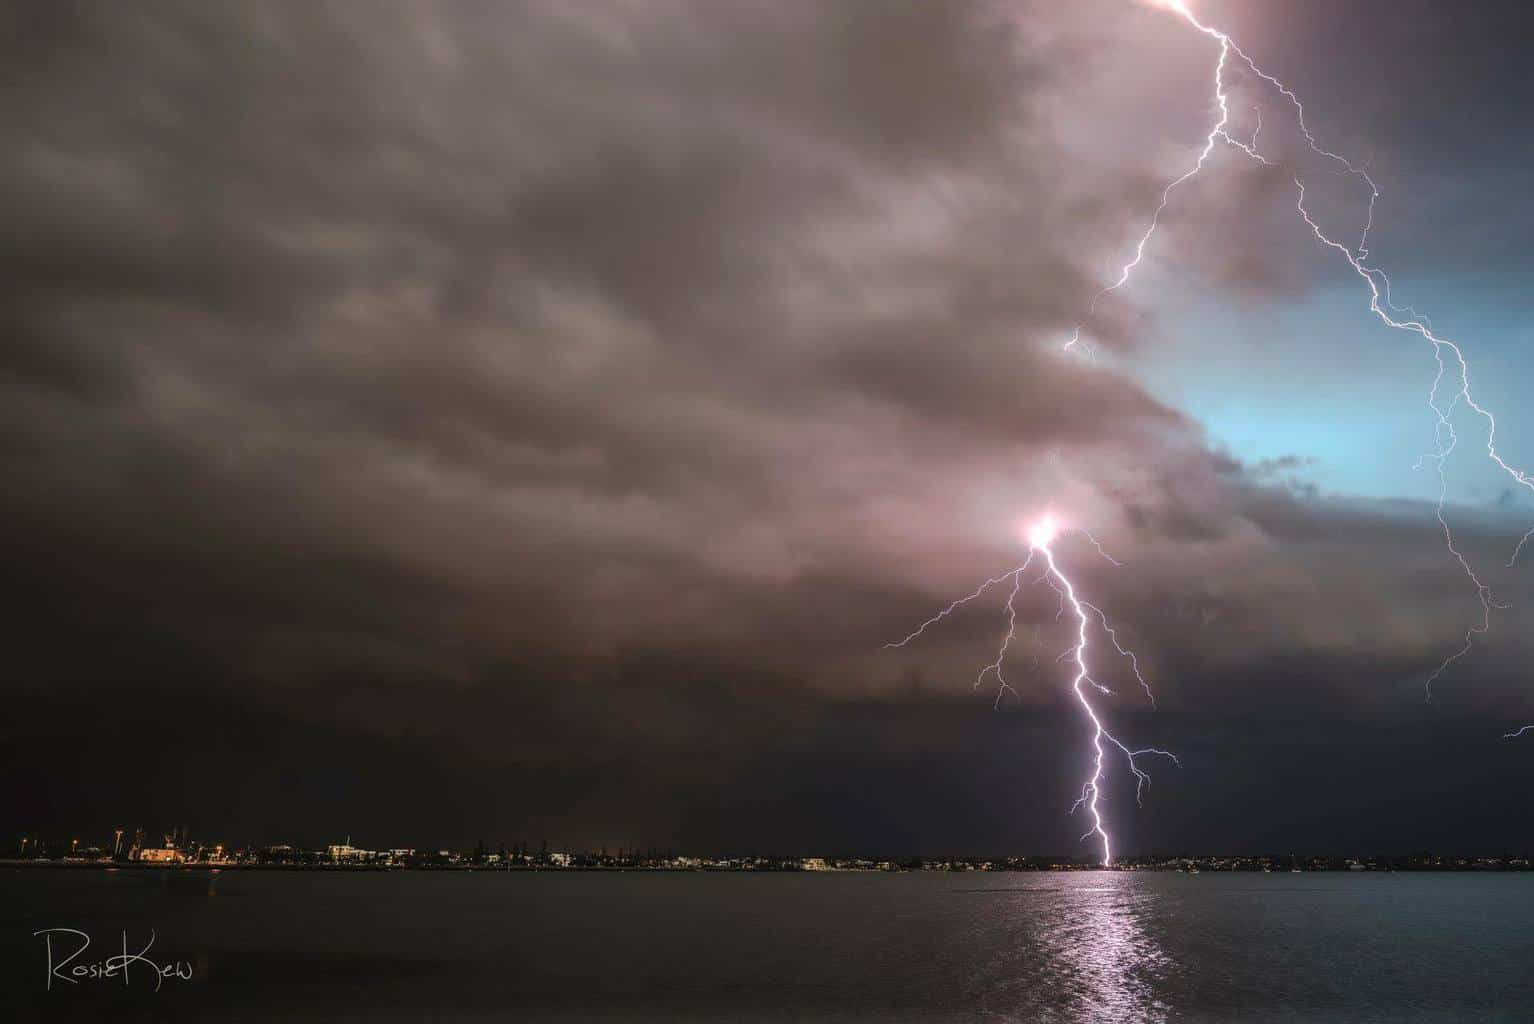 Our storm season seems to have finally ended. Severe warned storm crossing Moreton Bay Brisbane QLD about 6 weeks ago